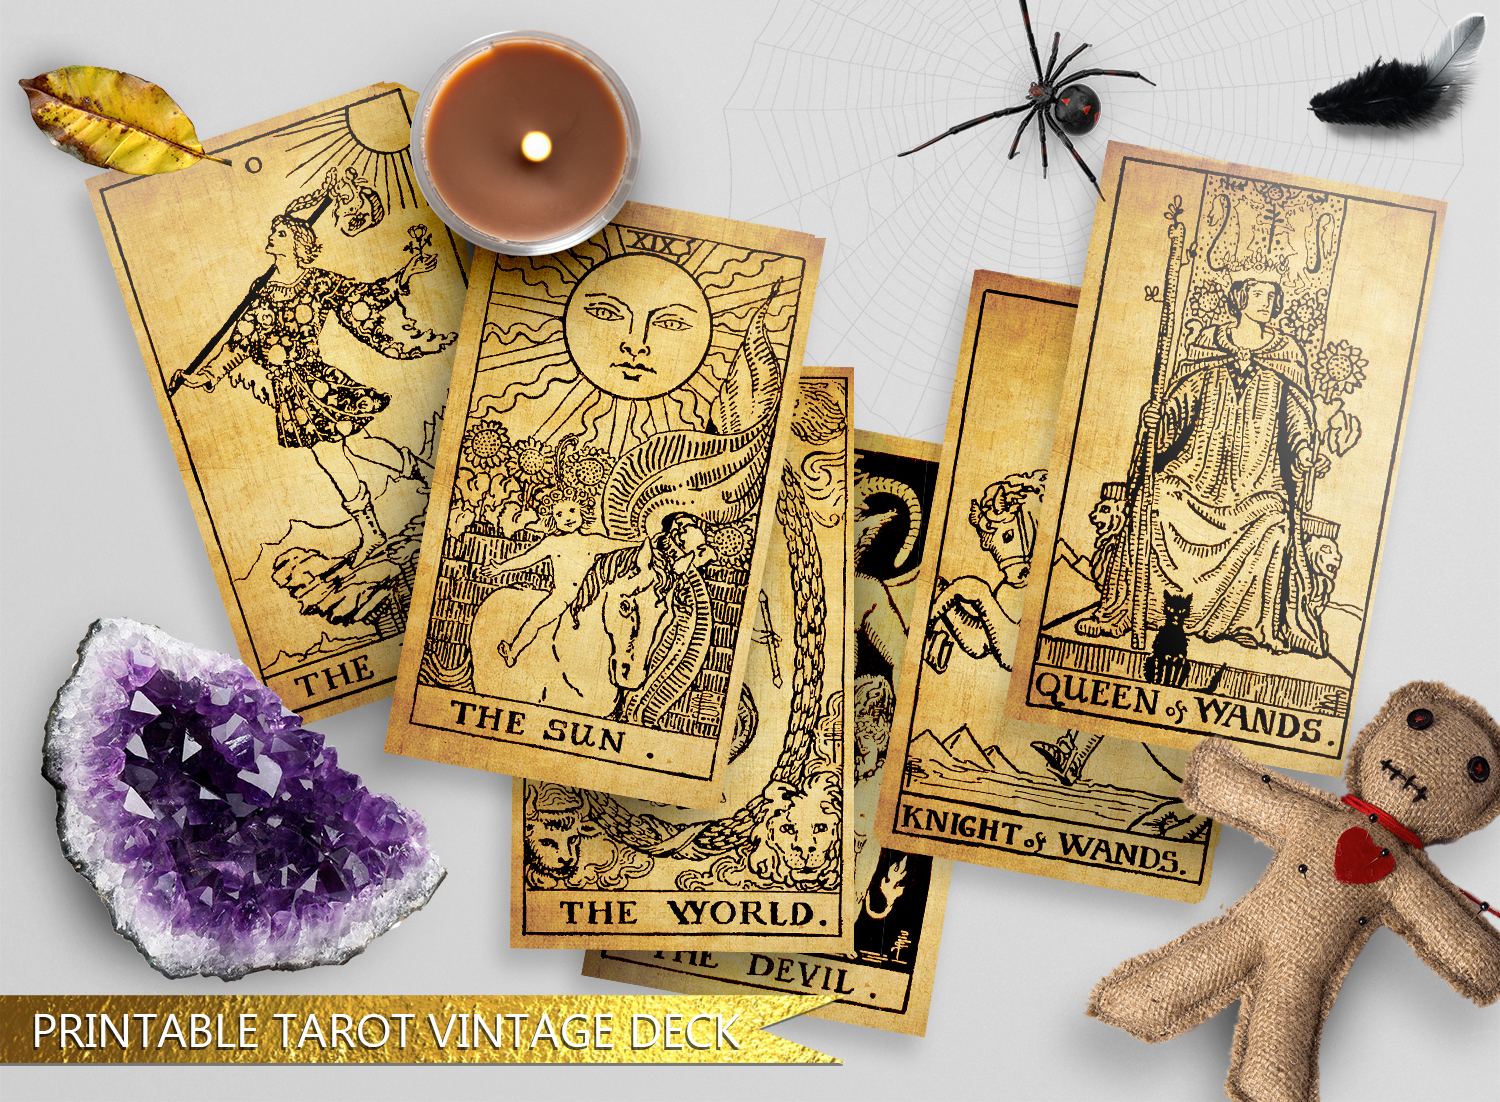 graphic relating to Printable Tarot Cards identify Printable Traditional The Rider Tarot Deck 1980s A.E Waite Uncommon Sepia or Black and White